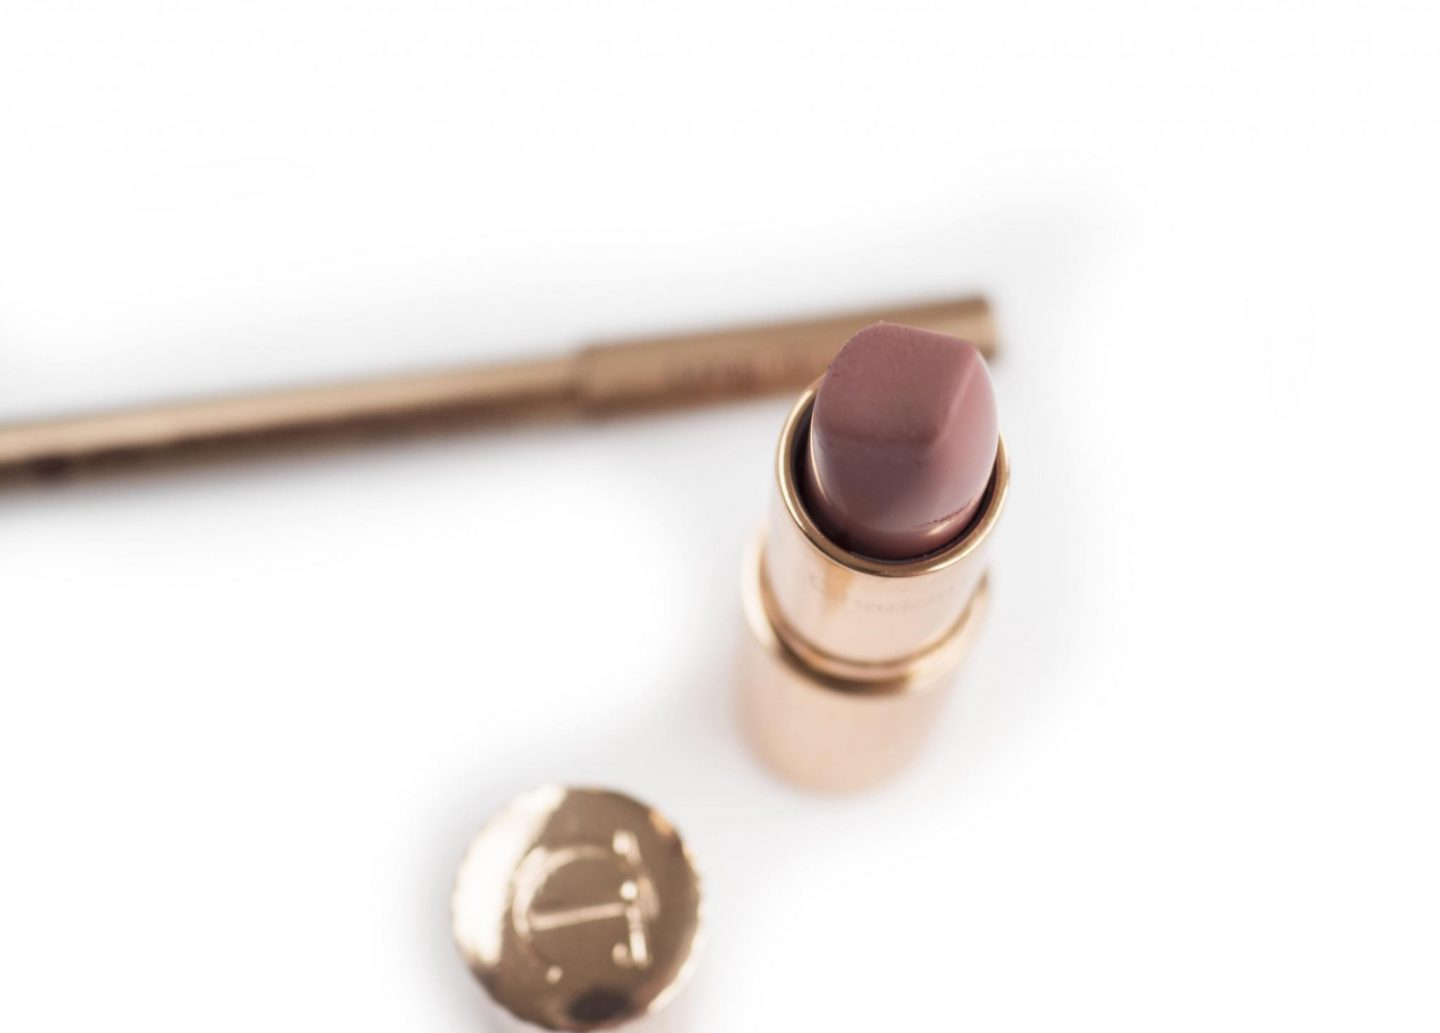 Charlotte Tilbury Pillow Talk Matte Revolution I Lip Cheat